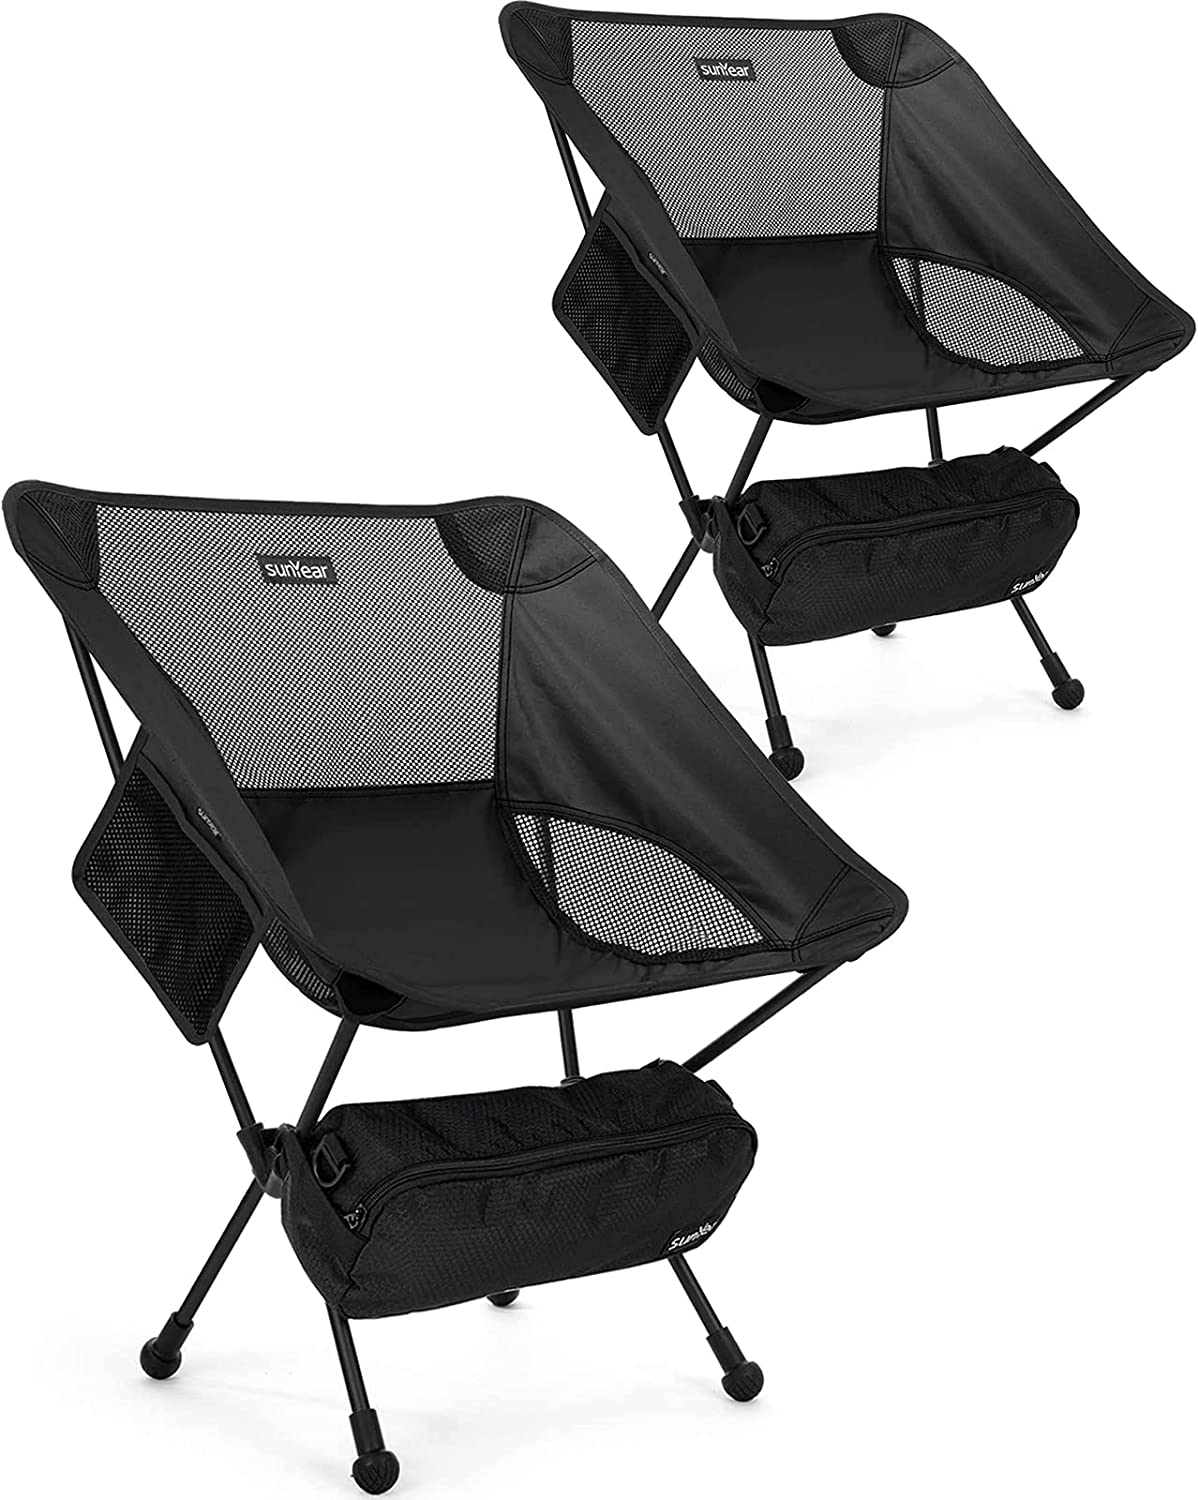 67% OFF of fixed price Sunyear Camping Chair Lightweight Portable Folding Super sale period limited C Backpacking